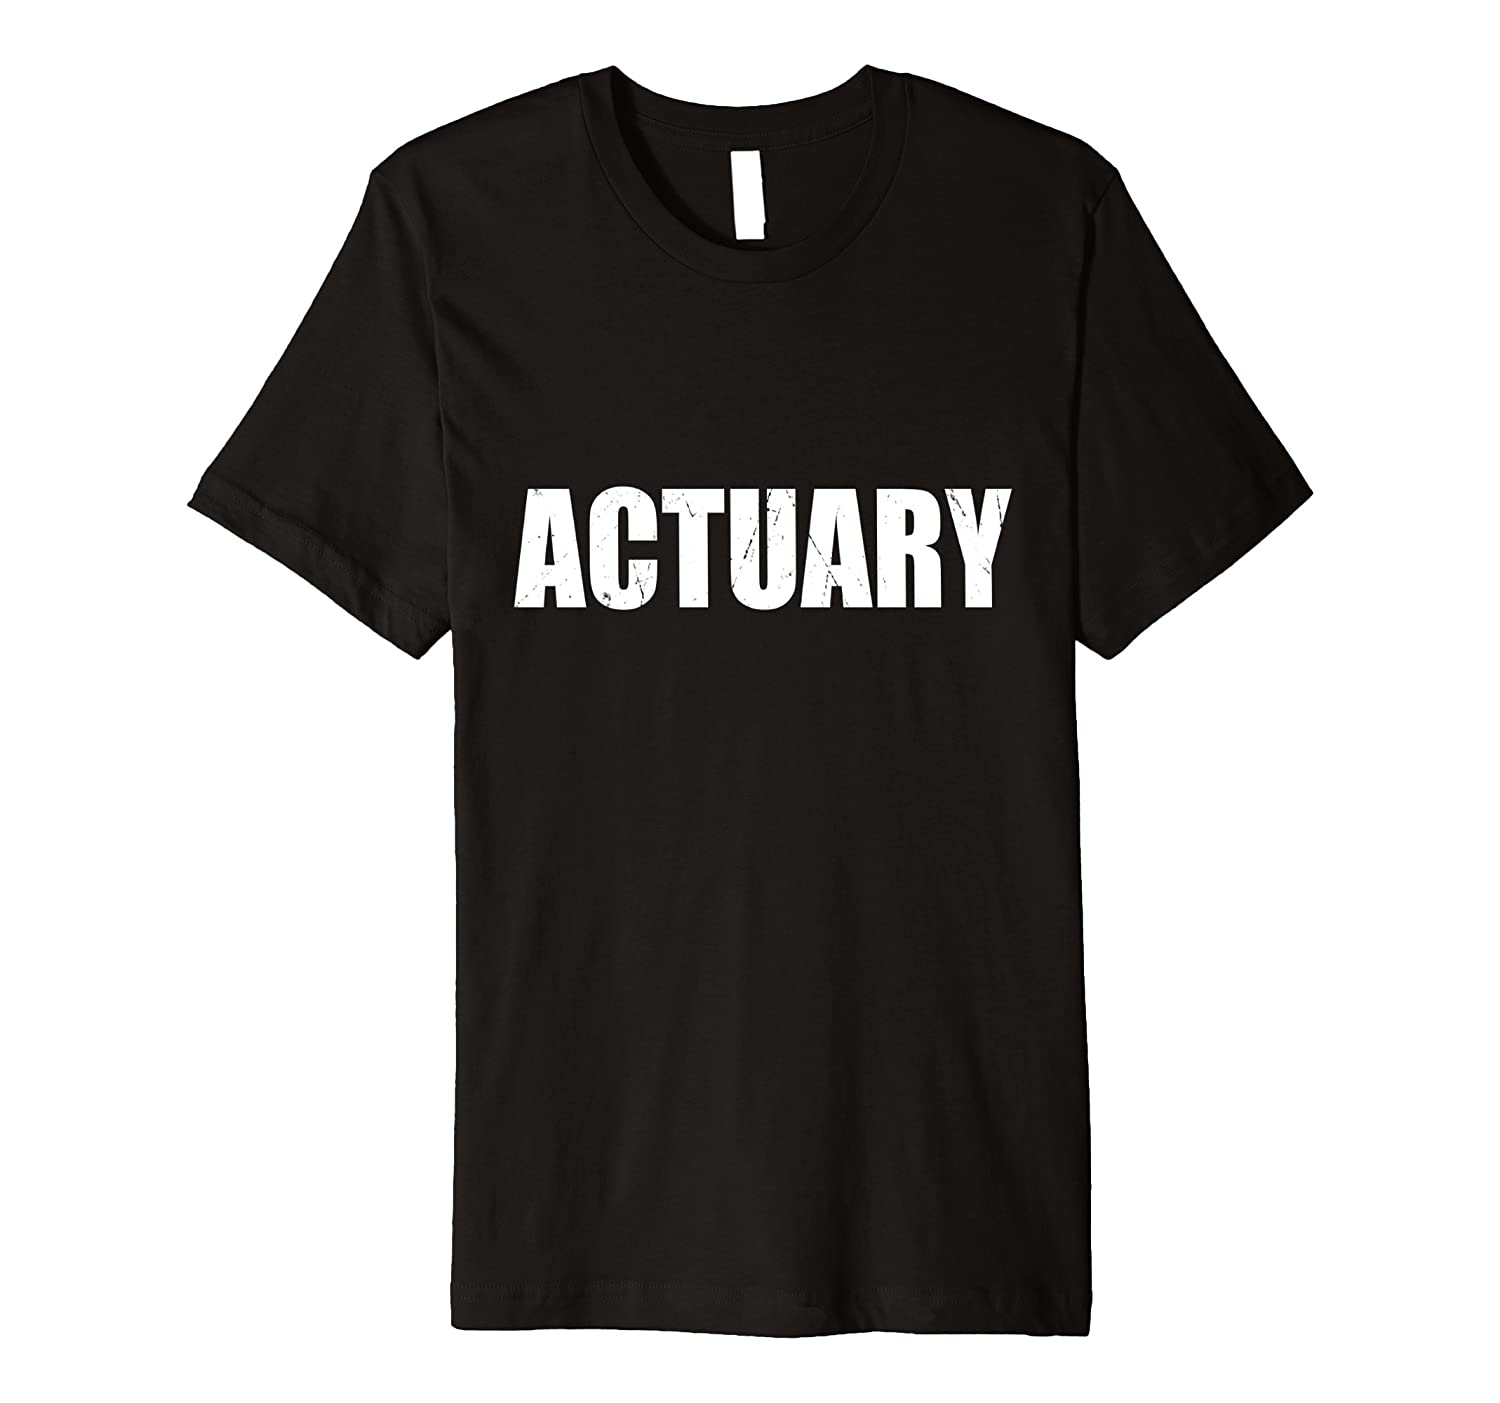 Actuary Shirt Halloween Costume Funny Cute Distressed Print-PL